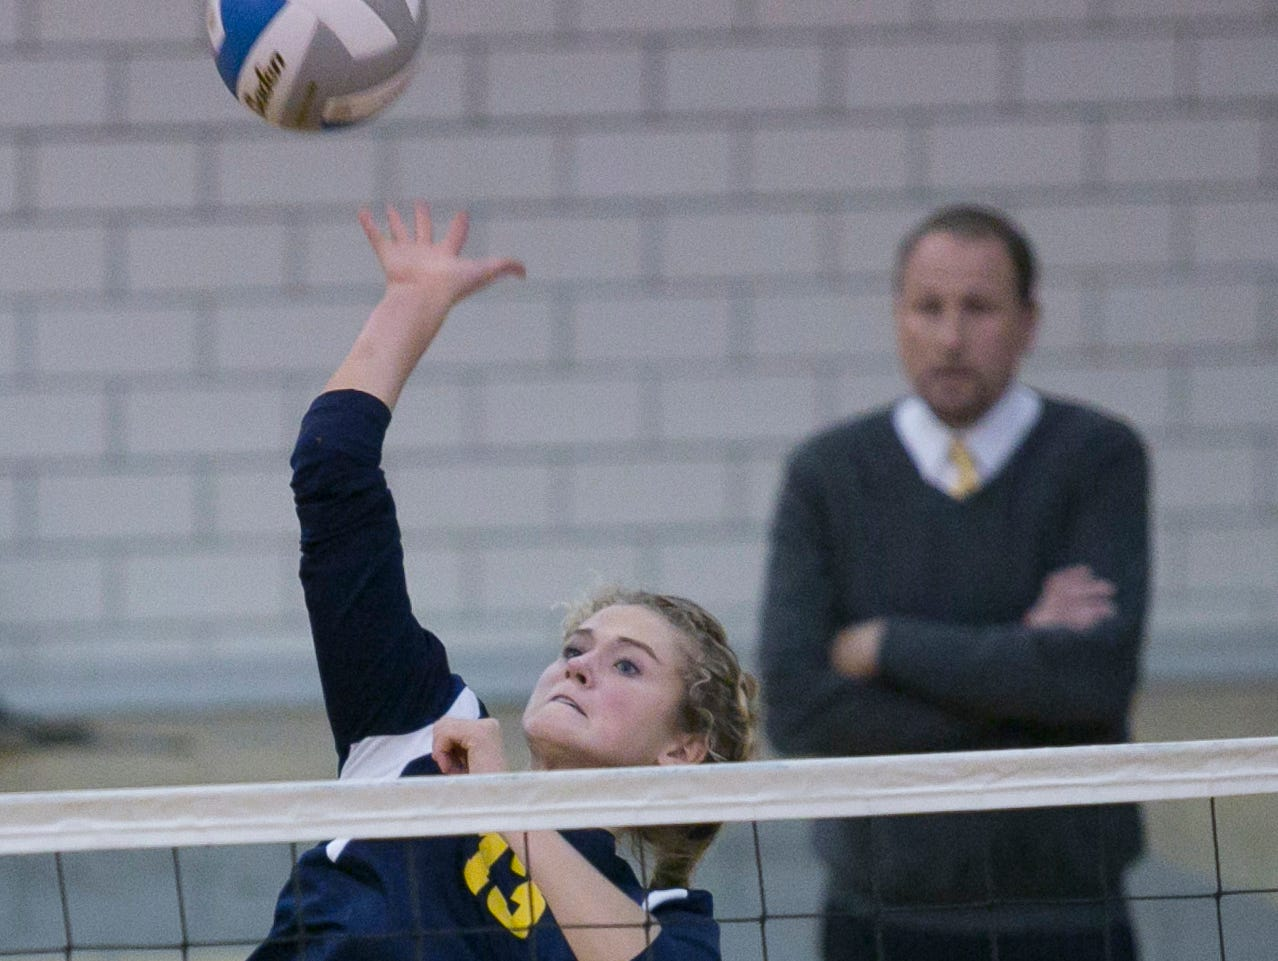 Port Huron Northern sophomore Sammi Klink spikes the ball during a volleyball game Tuesday, October 27, 2015 at Port Huron Northern High School.